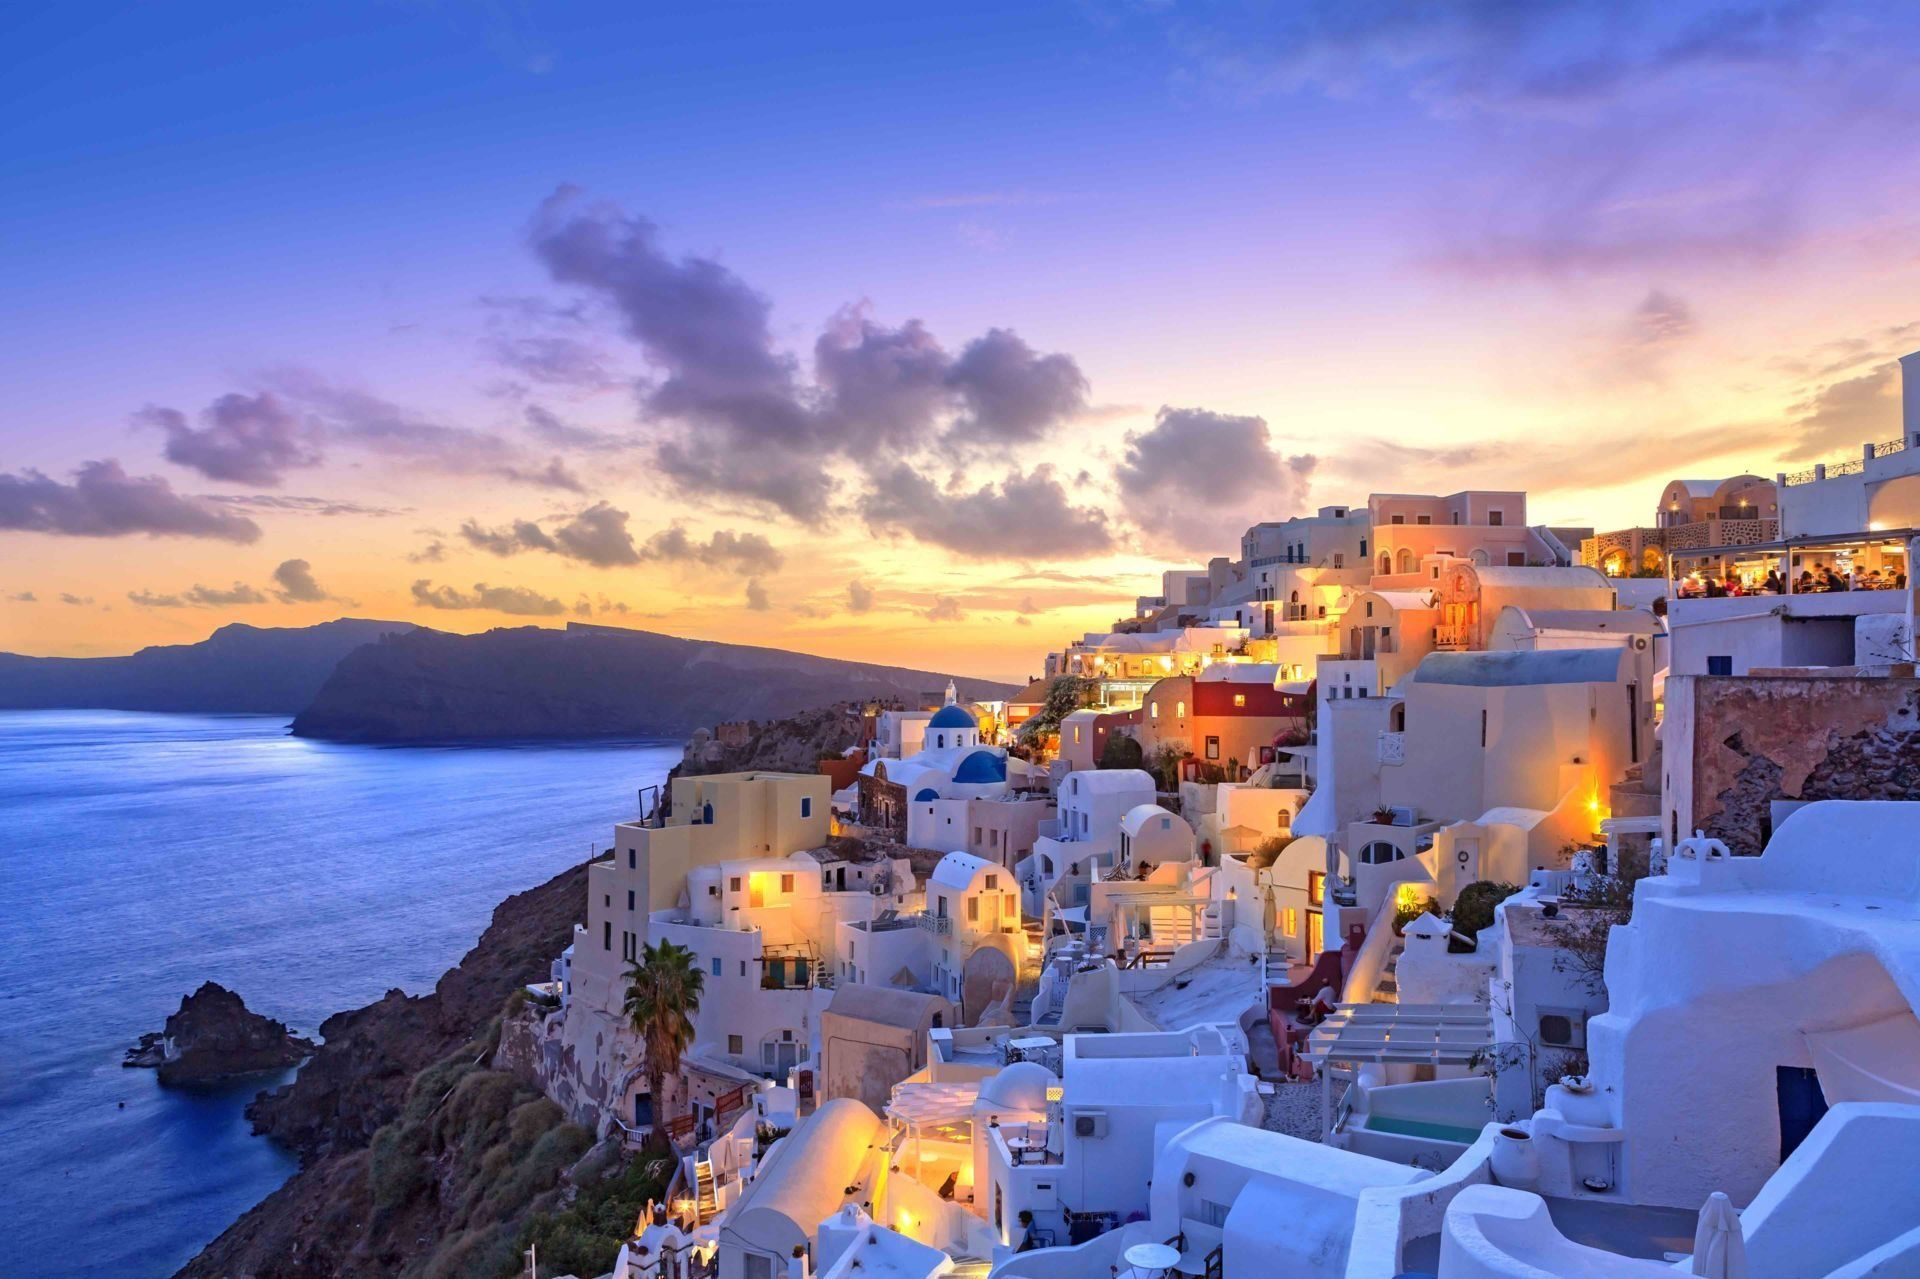 santorini-sunset-at-dawn-greece-